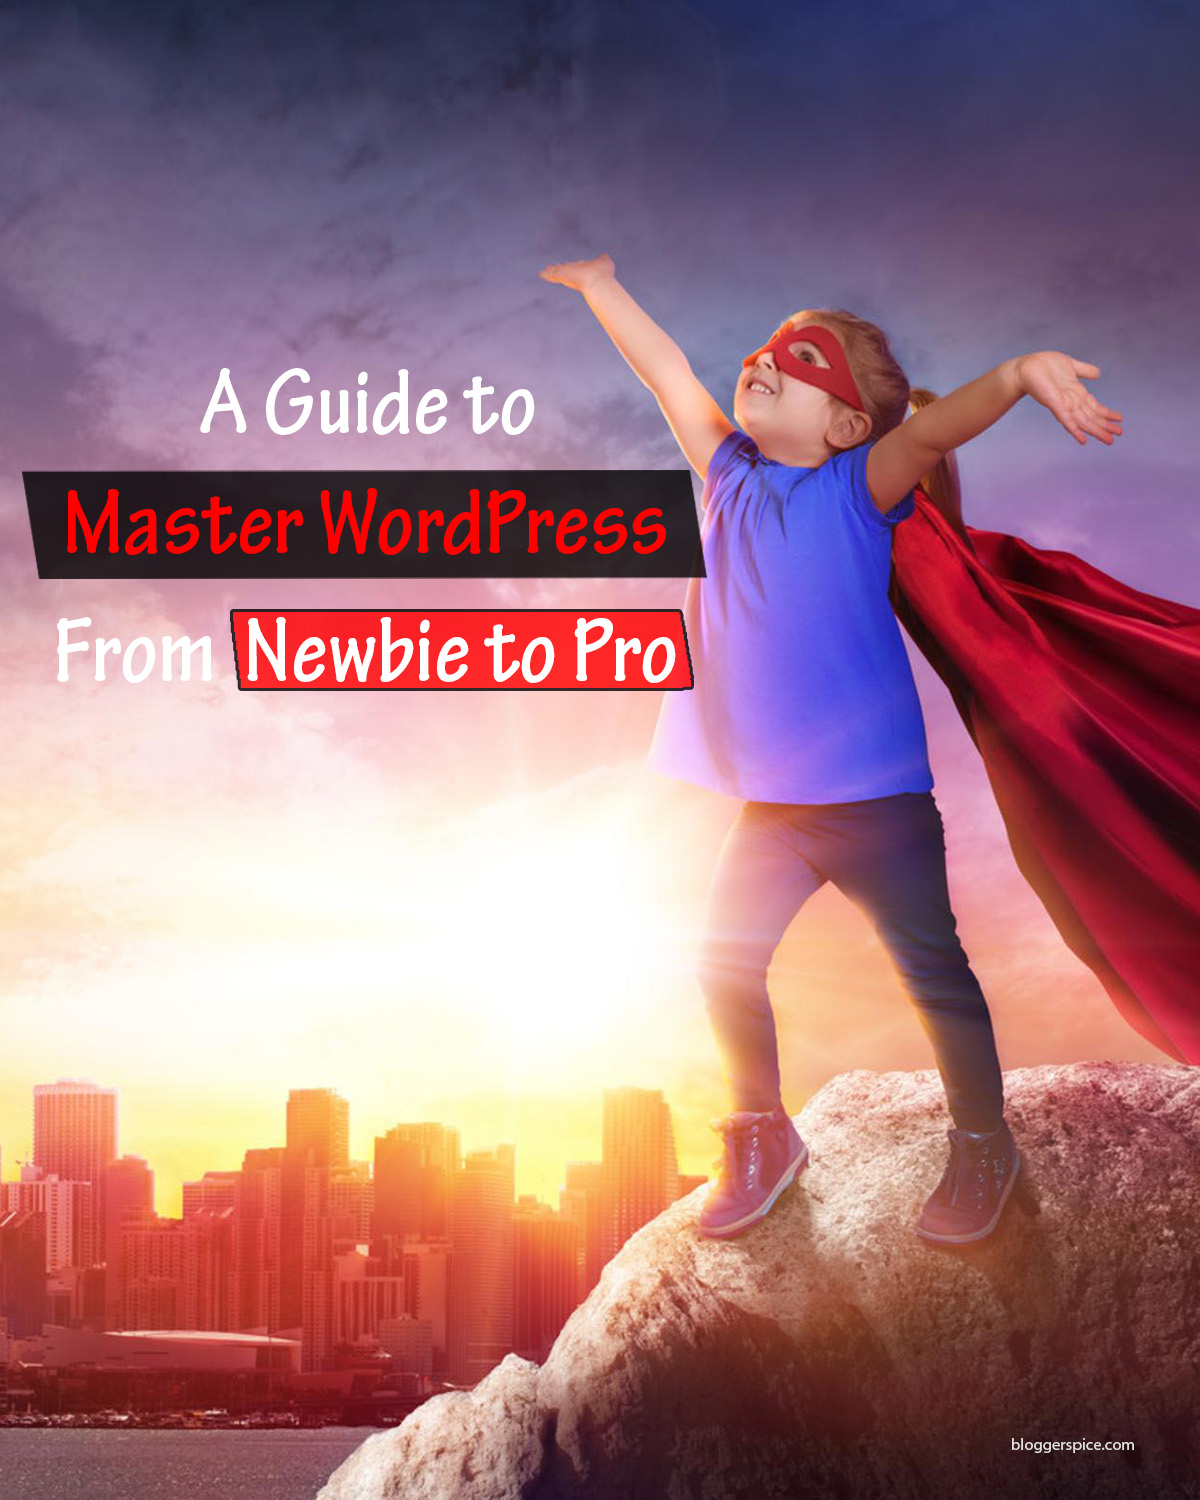 A New Guide to Master WordPress: From Newbie to Pro